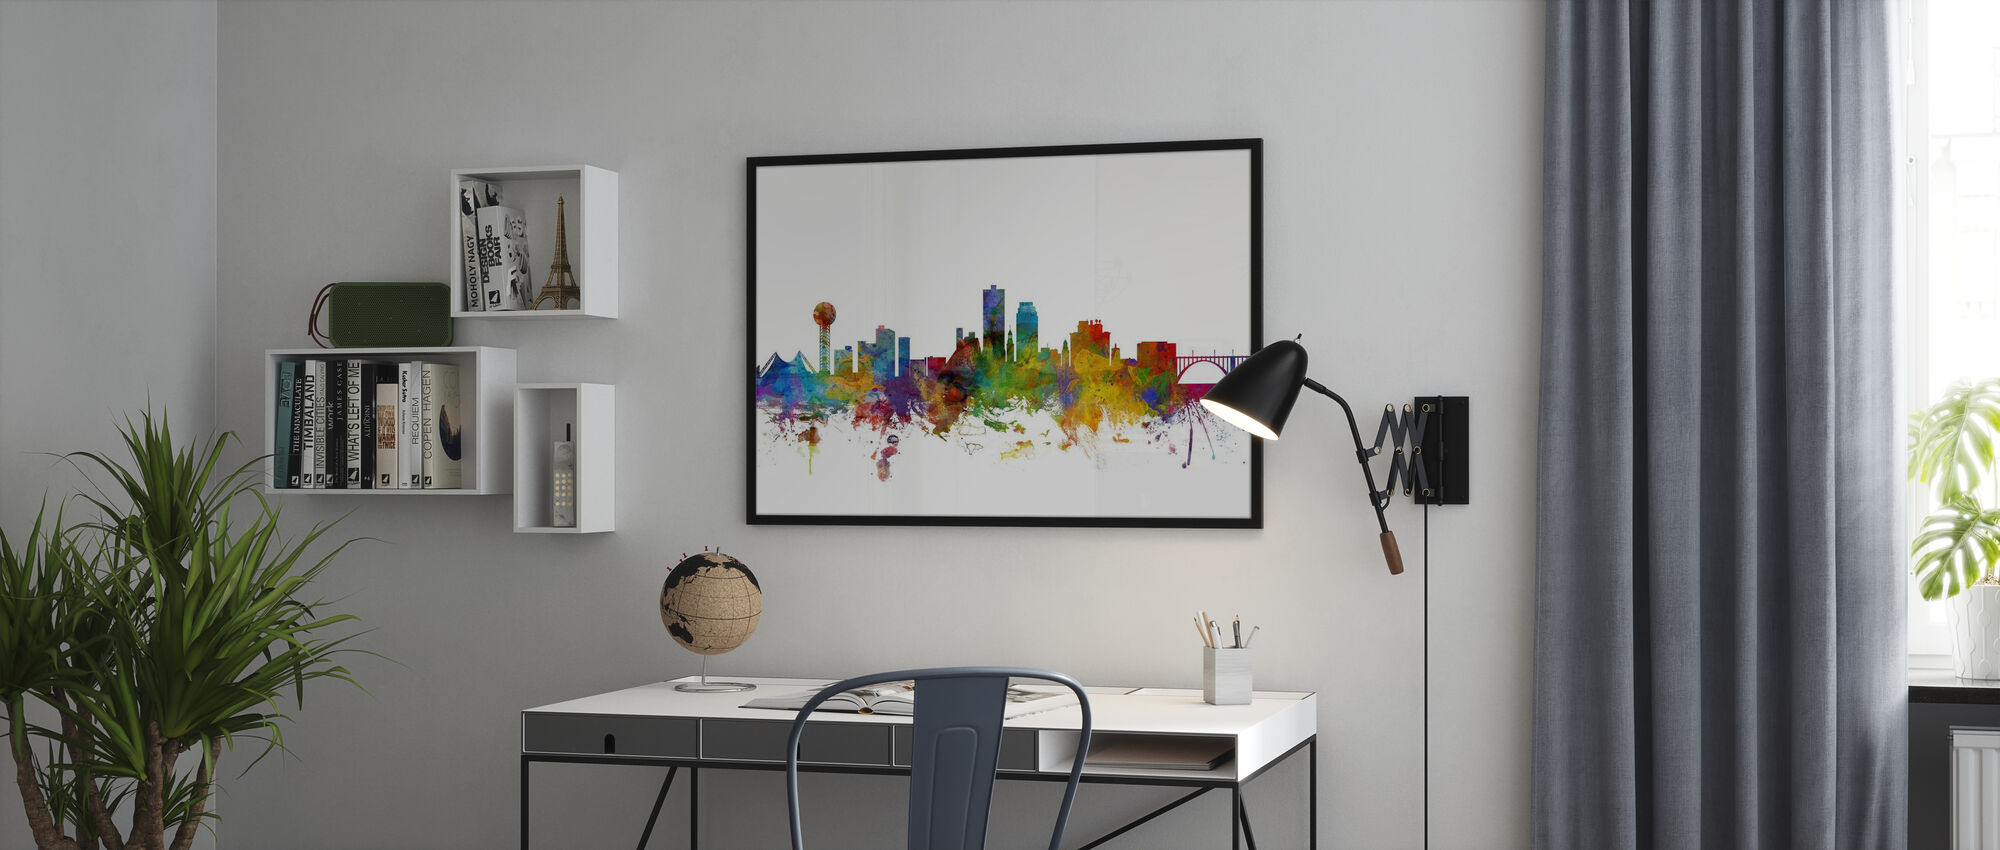 Knoxville Tennessee Skyline - Poster - Office